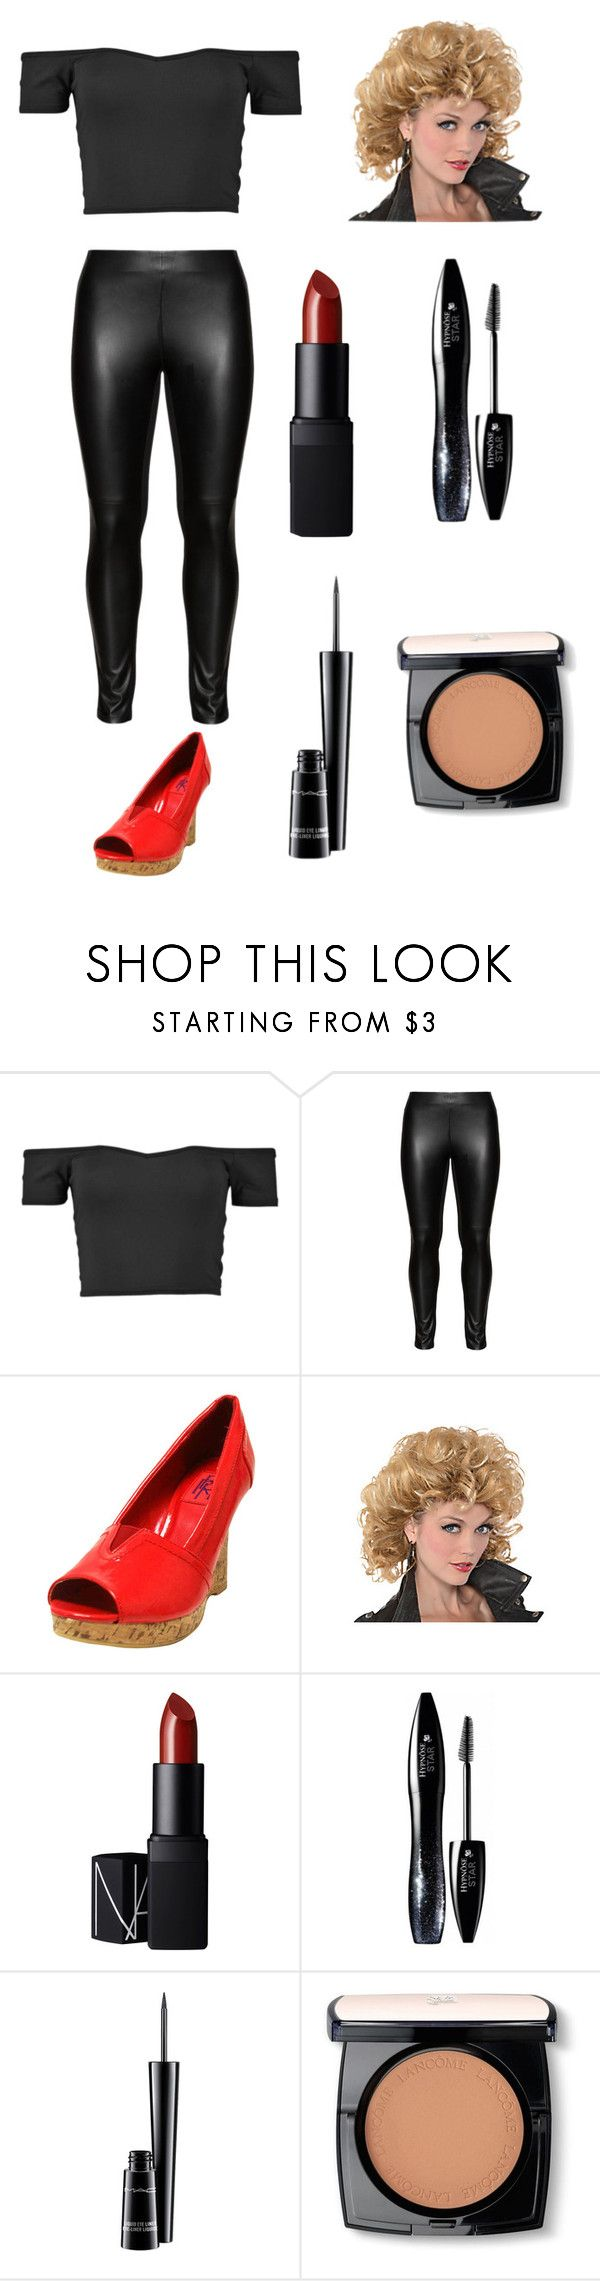 """Sandy from Grease costume"" by glittergirl04 ❤ liked on Polyvore featuring moda, Studio, NARS Cosmetics, Lancôme, MAC Cosmetics i Halloweencoustumesbyglittergirl04"